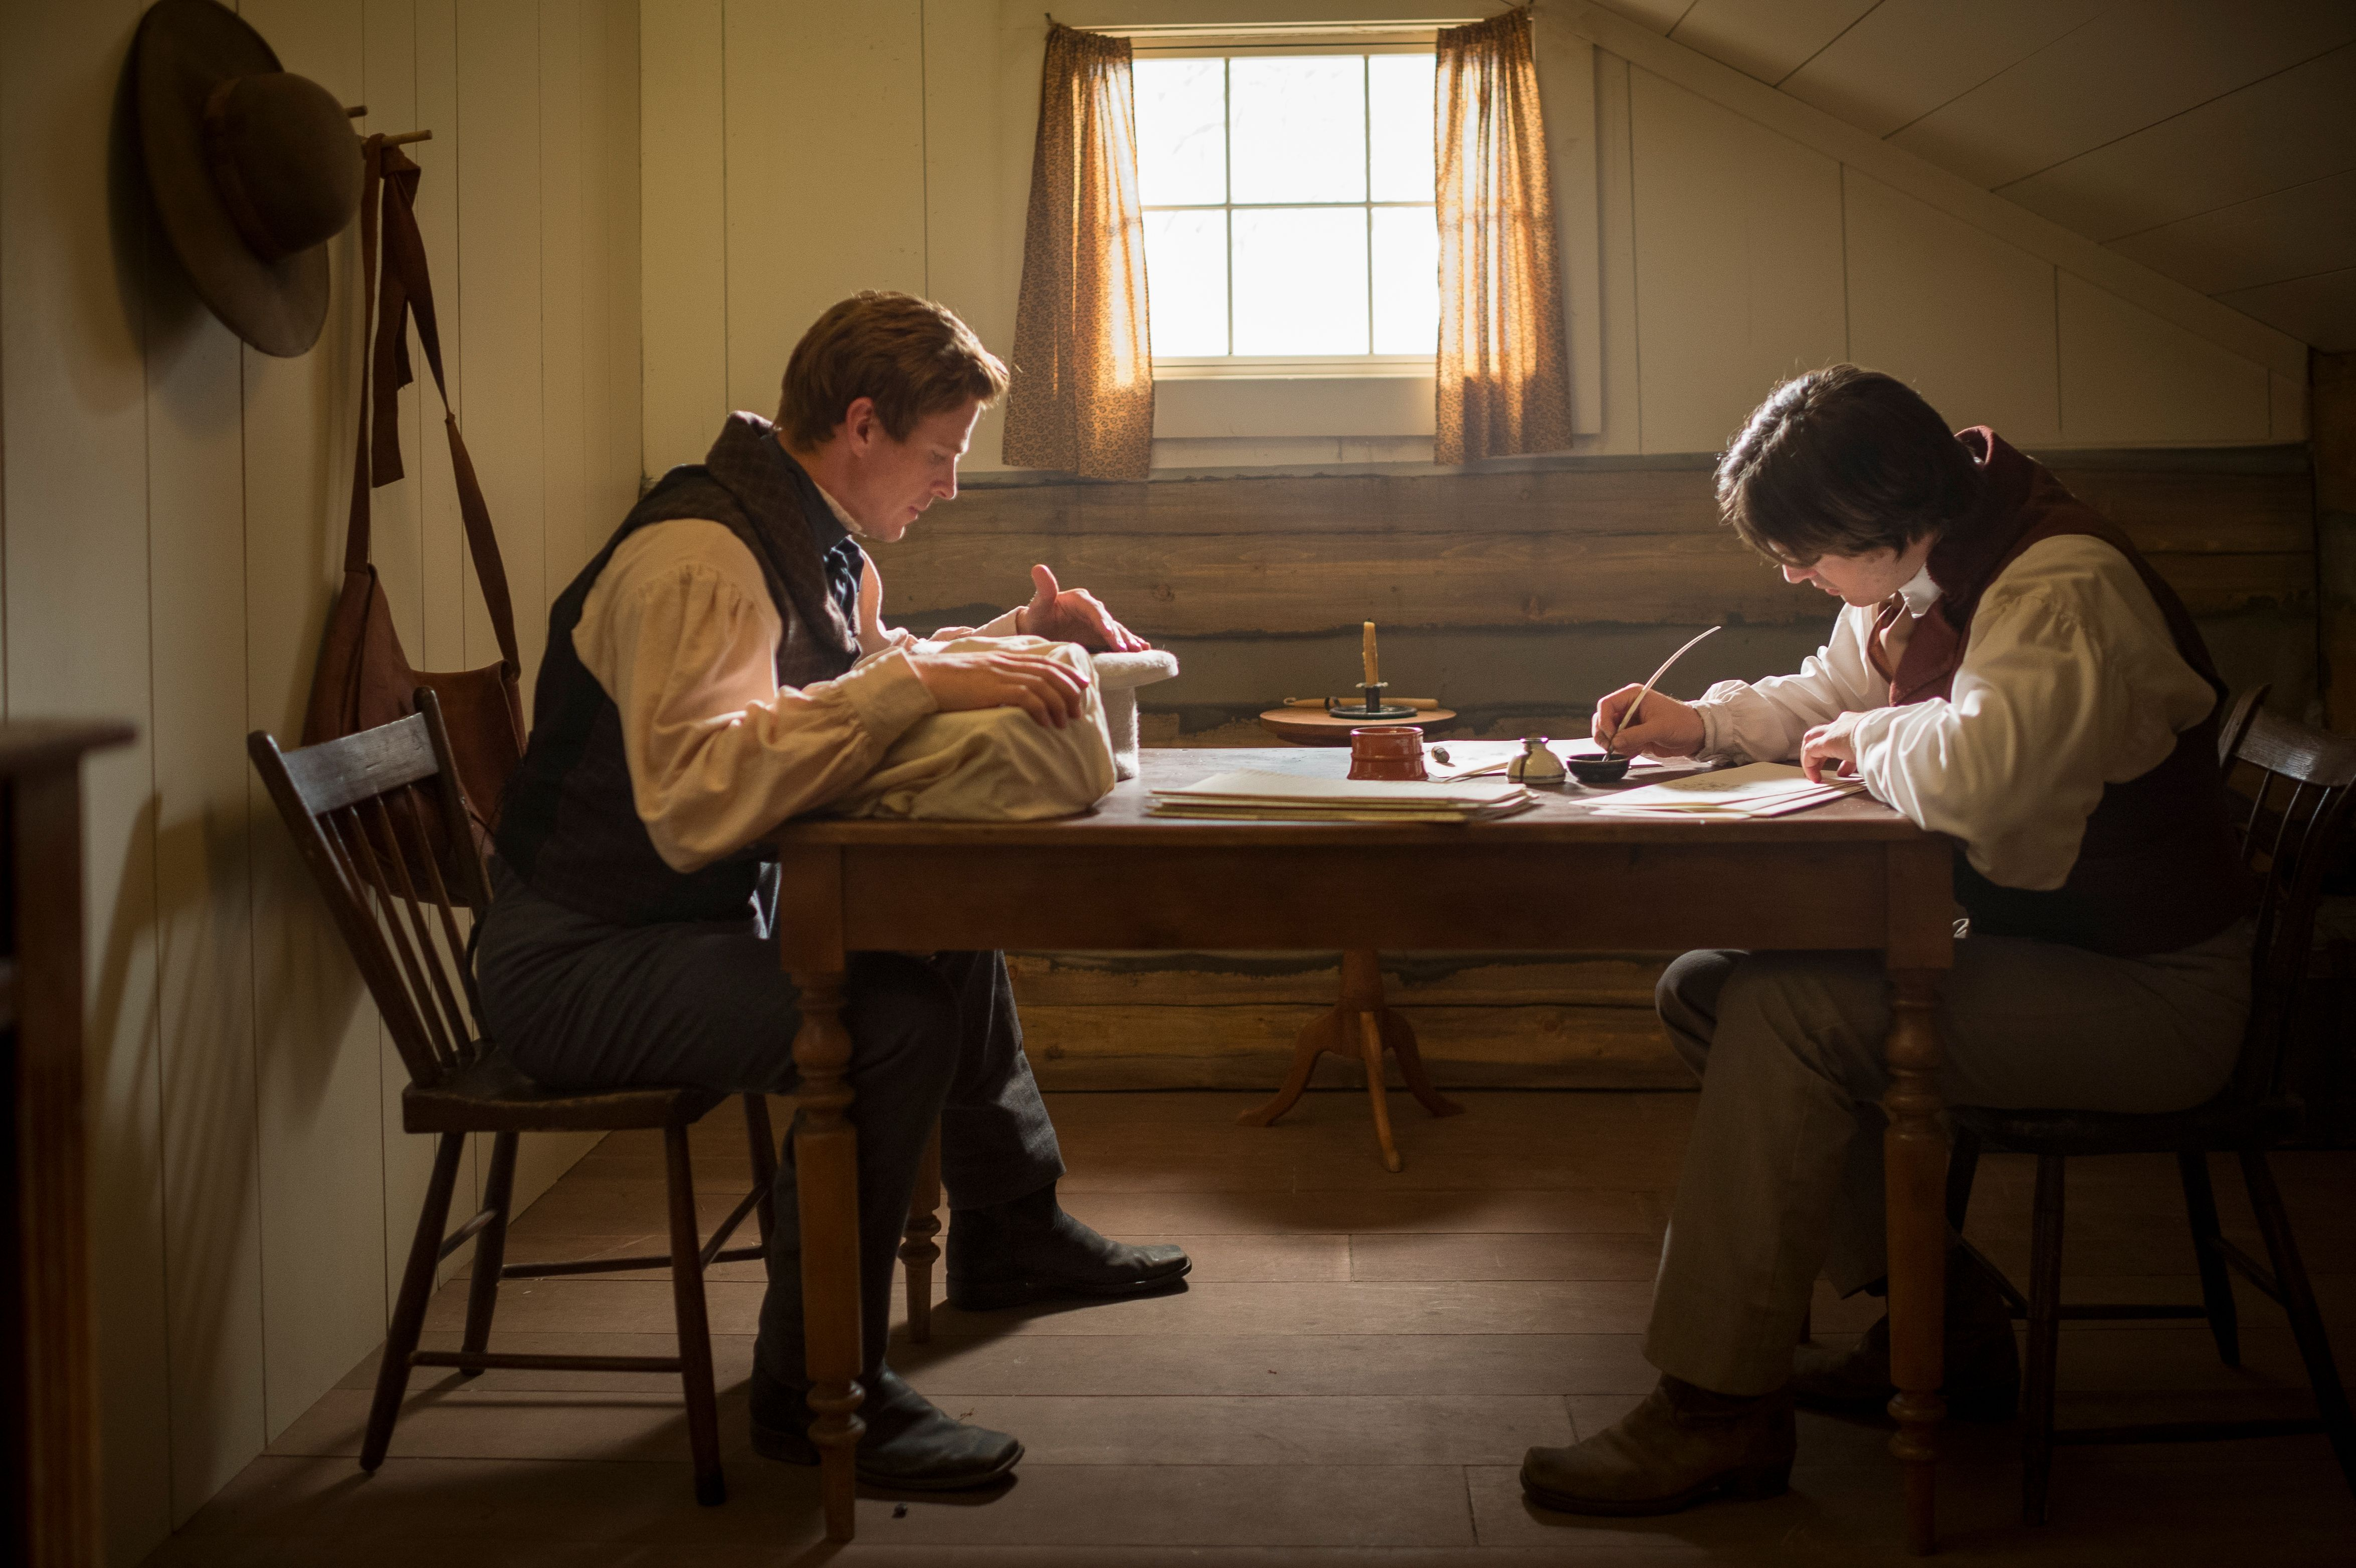 """An image from the video """"A Day for the Eternities"""" depicting Joseph Smith translating the Book of Mormon, dictating the text to his scribe, Oliver Cowdery."""